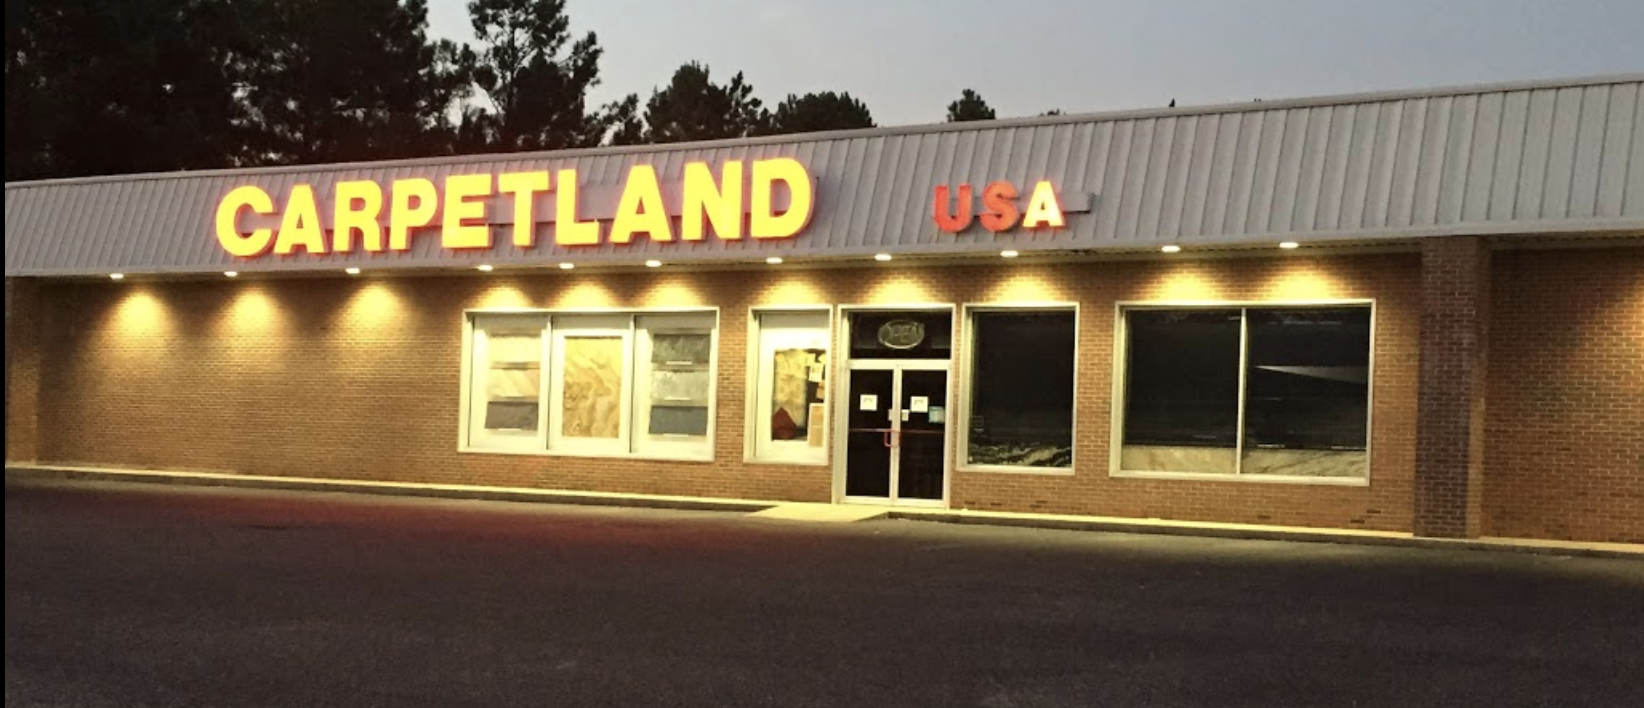 Carpetland USA - 2710 Ross Clark Cir Dothan, AL 36301